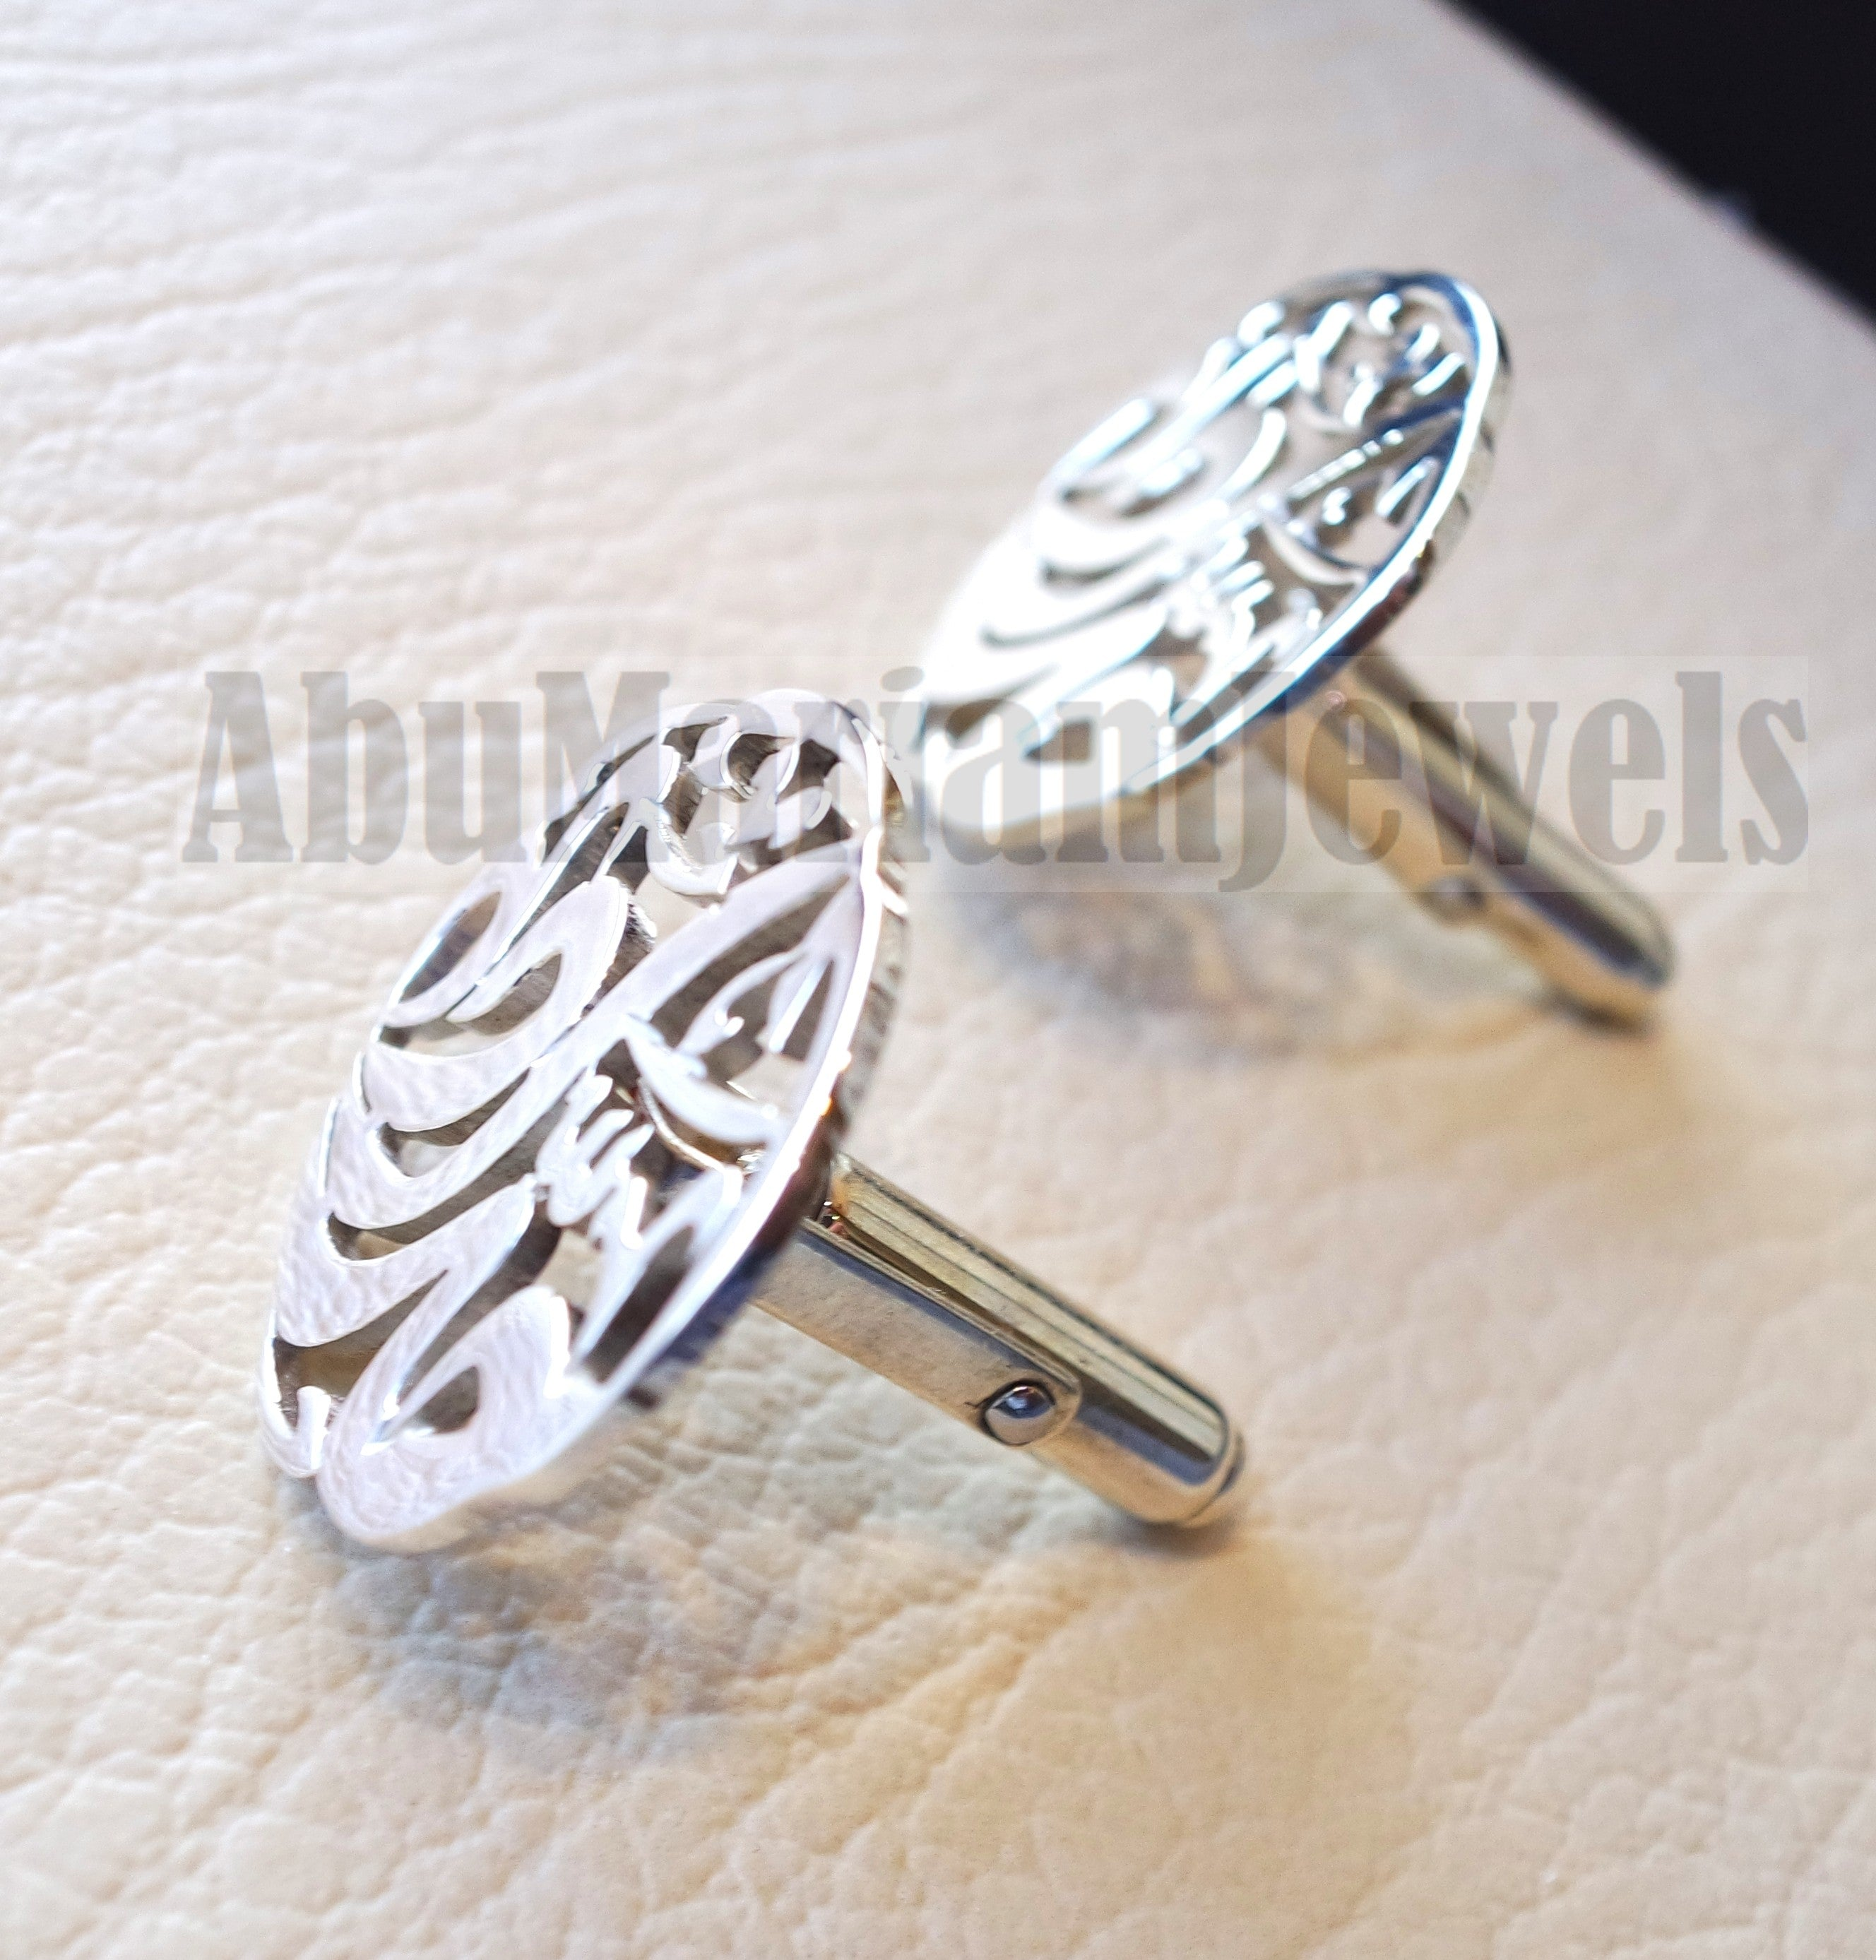 cufflinks , cuflinks 2 or 1 name one word each calligraphy arabic customized any name made to order sterling silver 925 men jewelry CF112